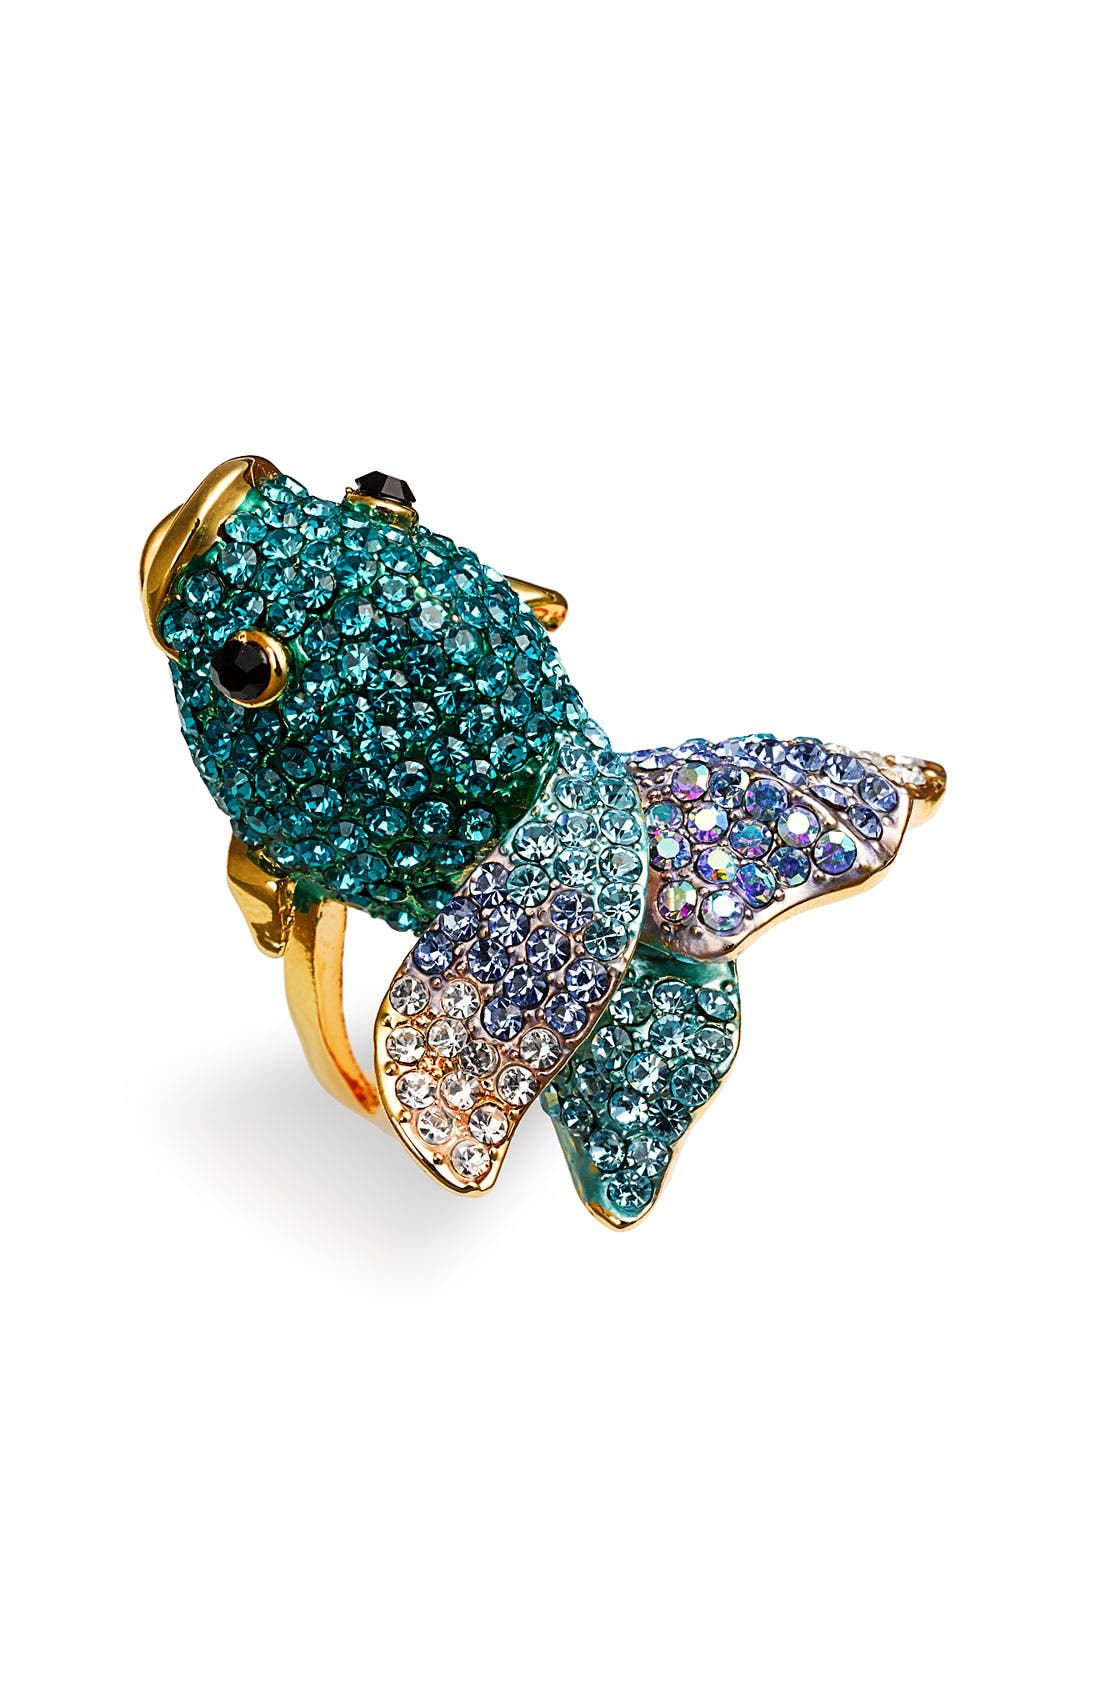 Accessories 'Critters' Blowfish Crystal Stretch Ring,                             Main thumbnail 1, color,                             960